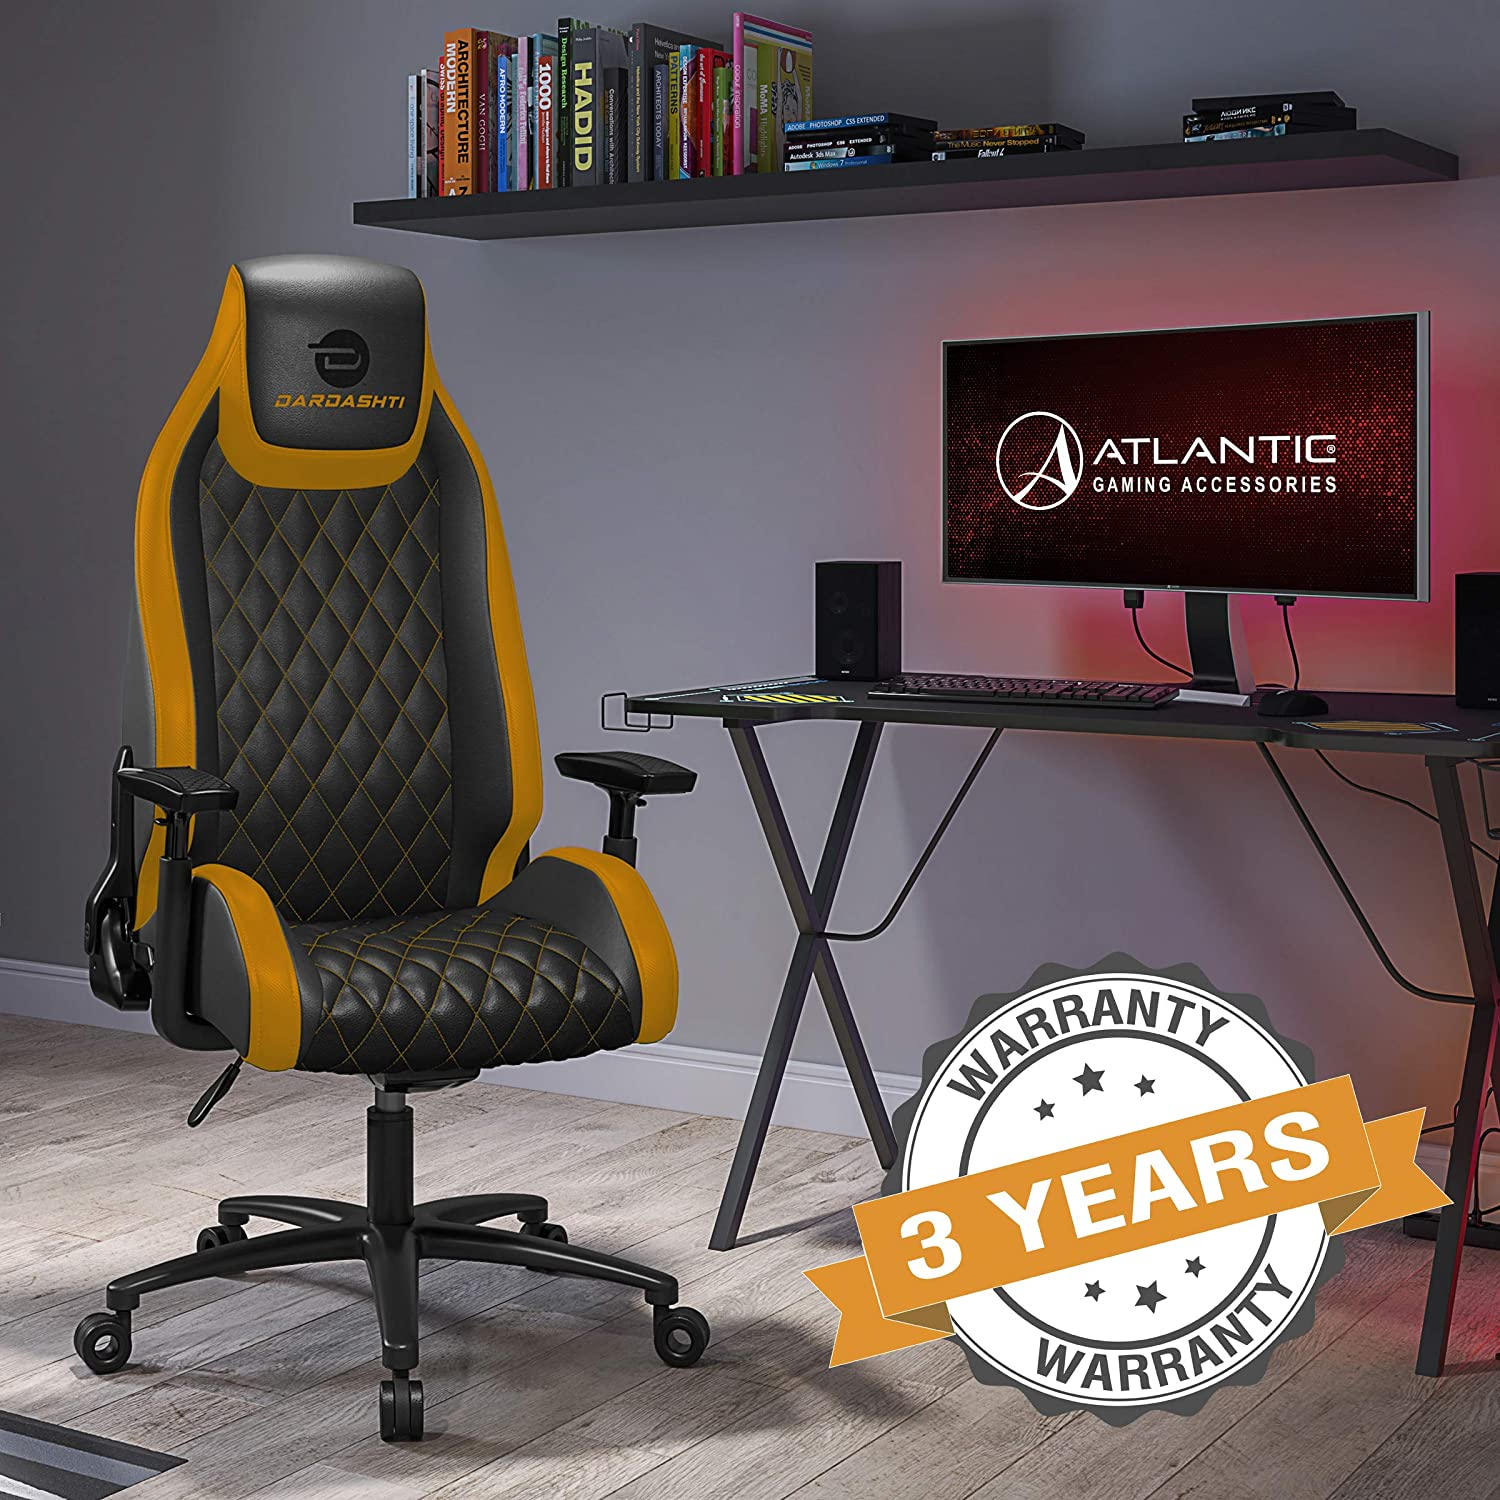 25% Off Atlantic Dardashti Gaming Chair - Commercial Grade, BIFMA X5.1 Tested, Next-Gen Ergonomic